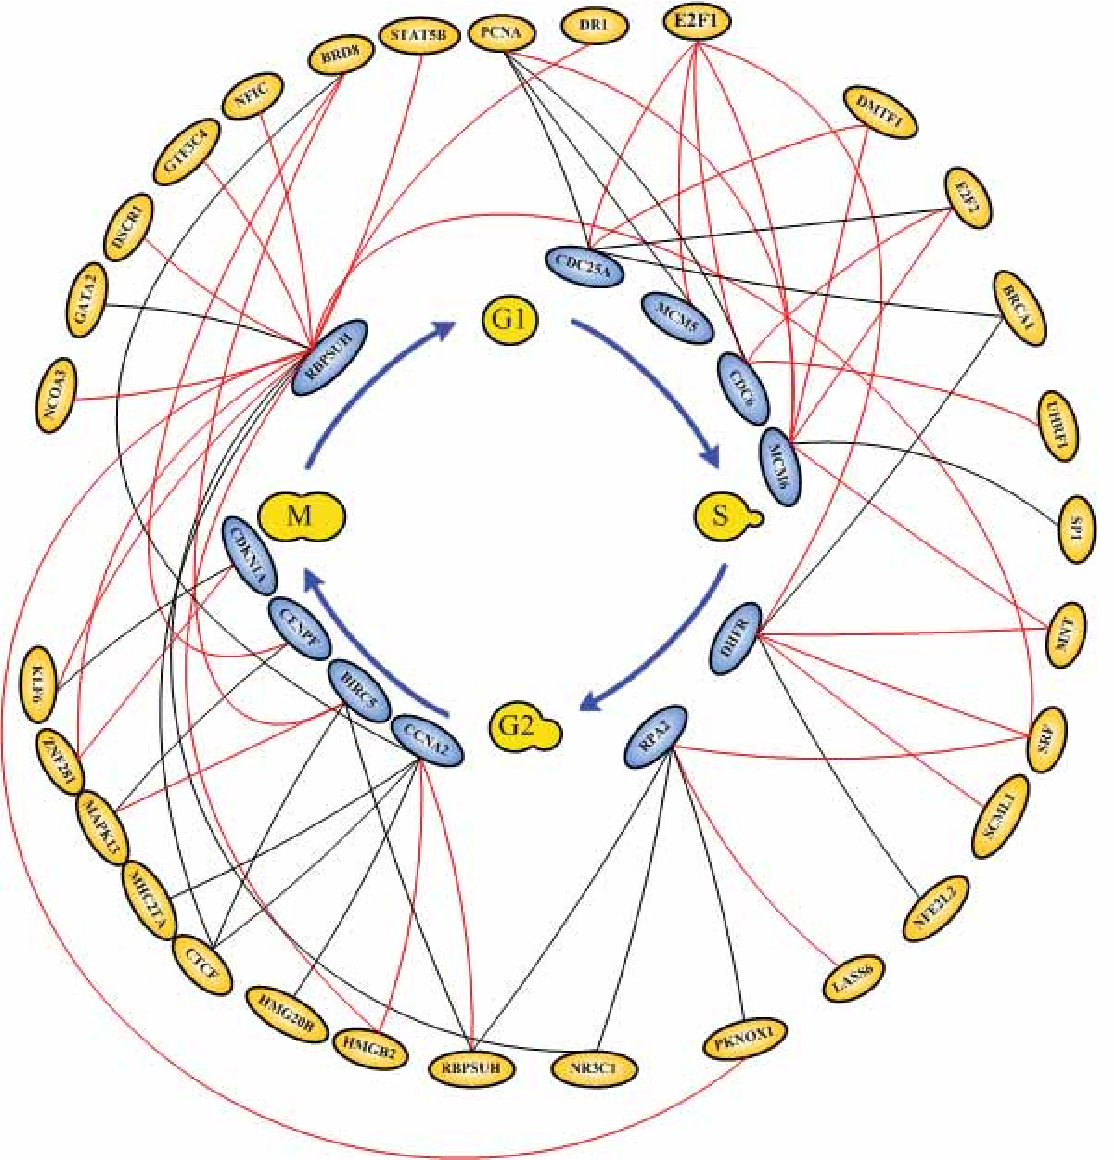 Figure 5. The miniature cancer cell cycle network. In this fi gure we just list some E2F target genes and show the role of E2F transcription factors in cancer cell cycle (Muller and Helin 2000). Red solid lines represent positive regulations and black solid lines represent negative regulations.